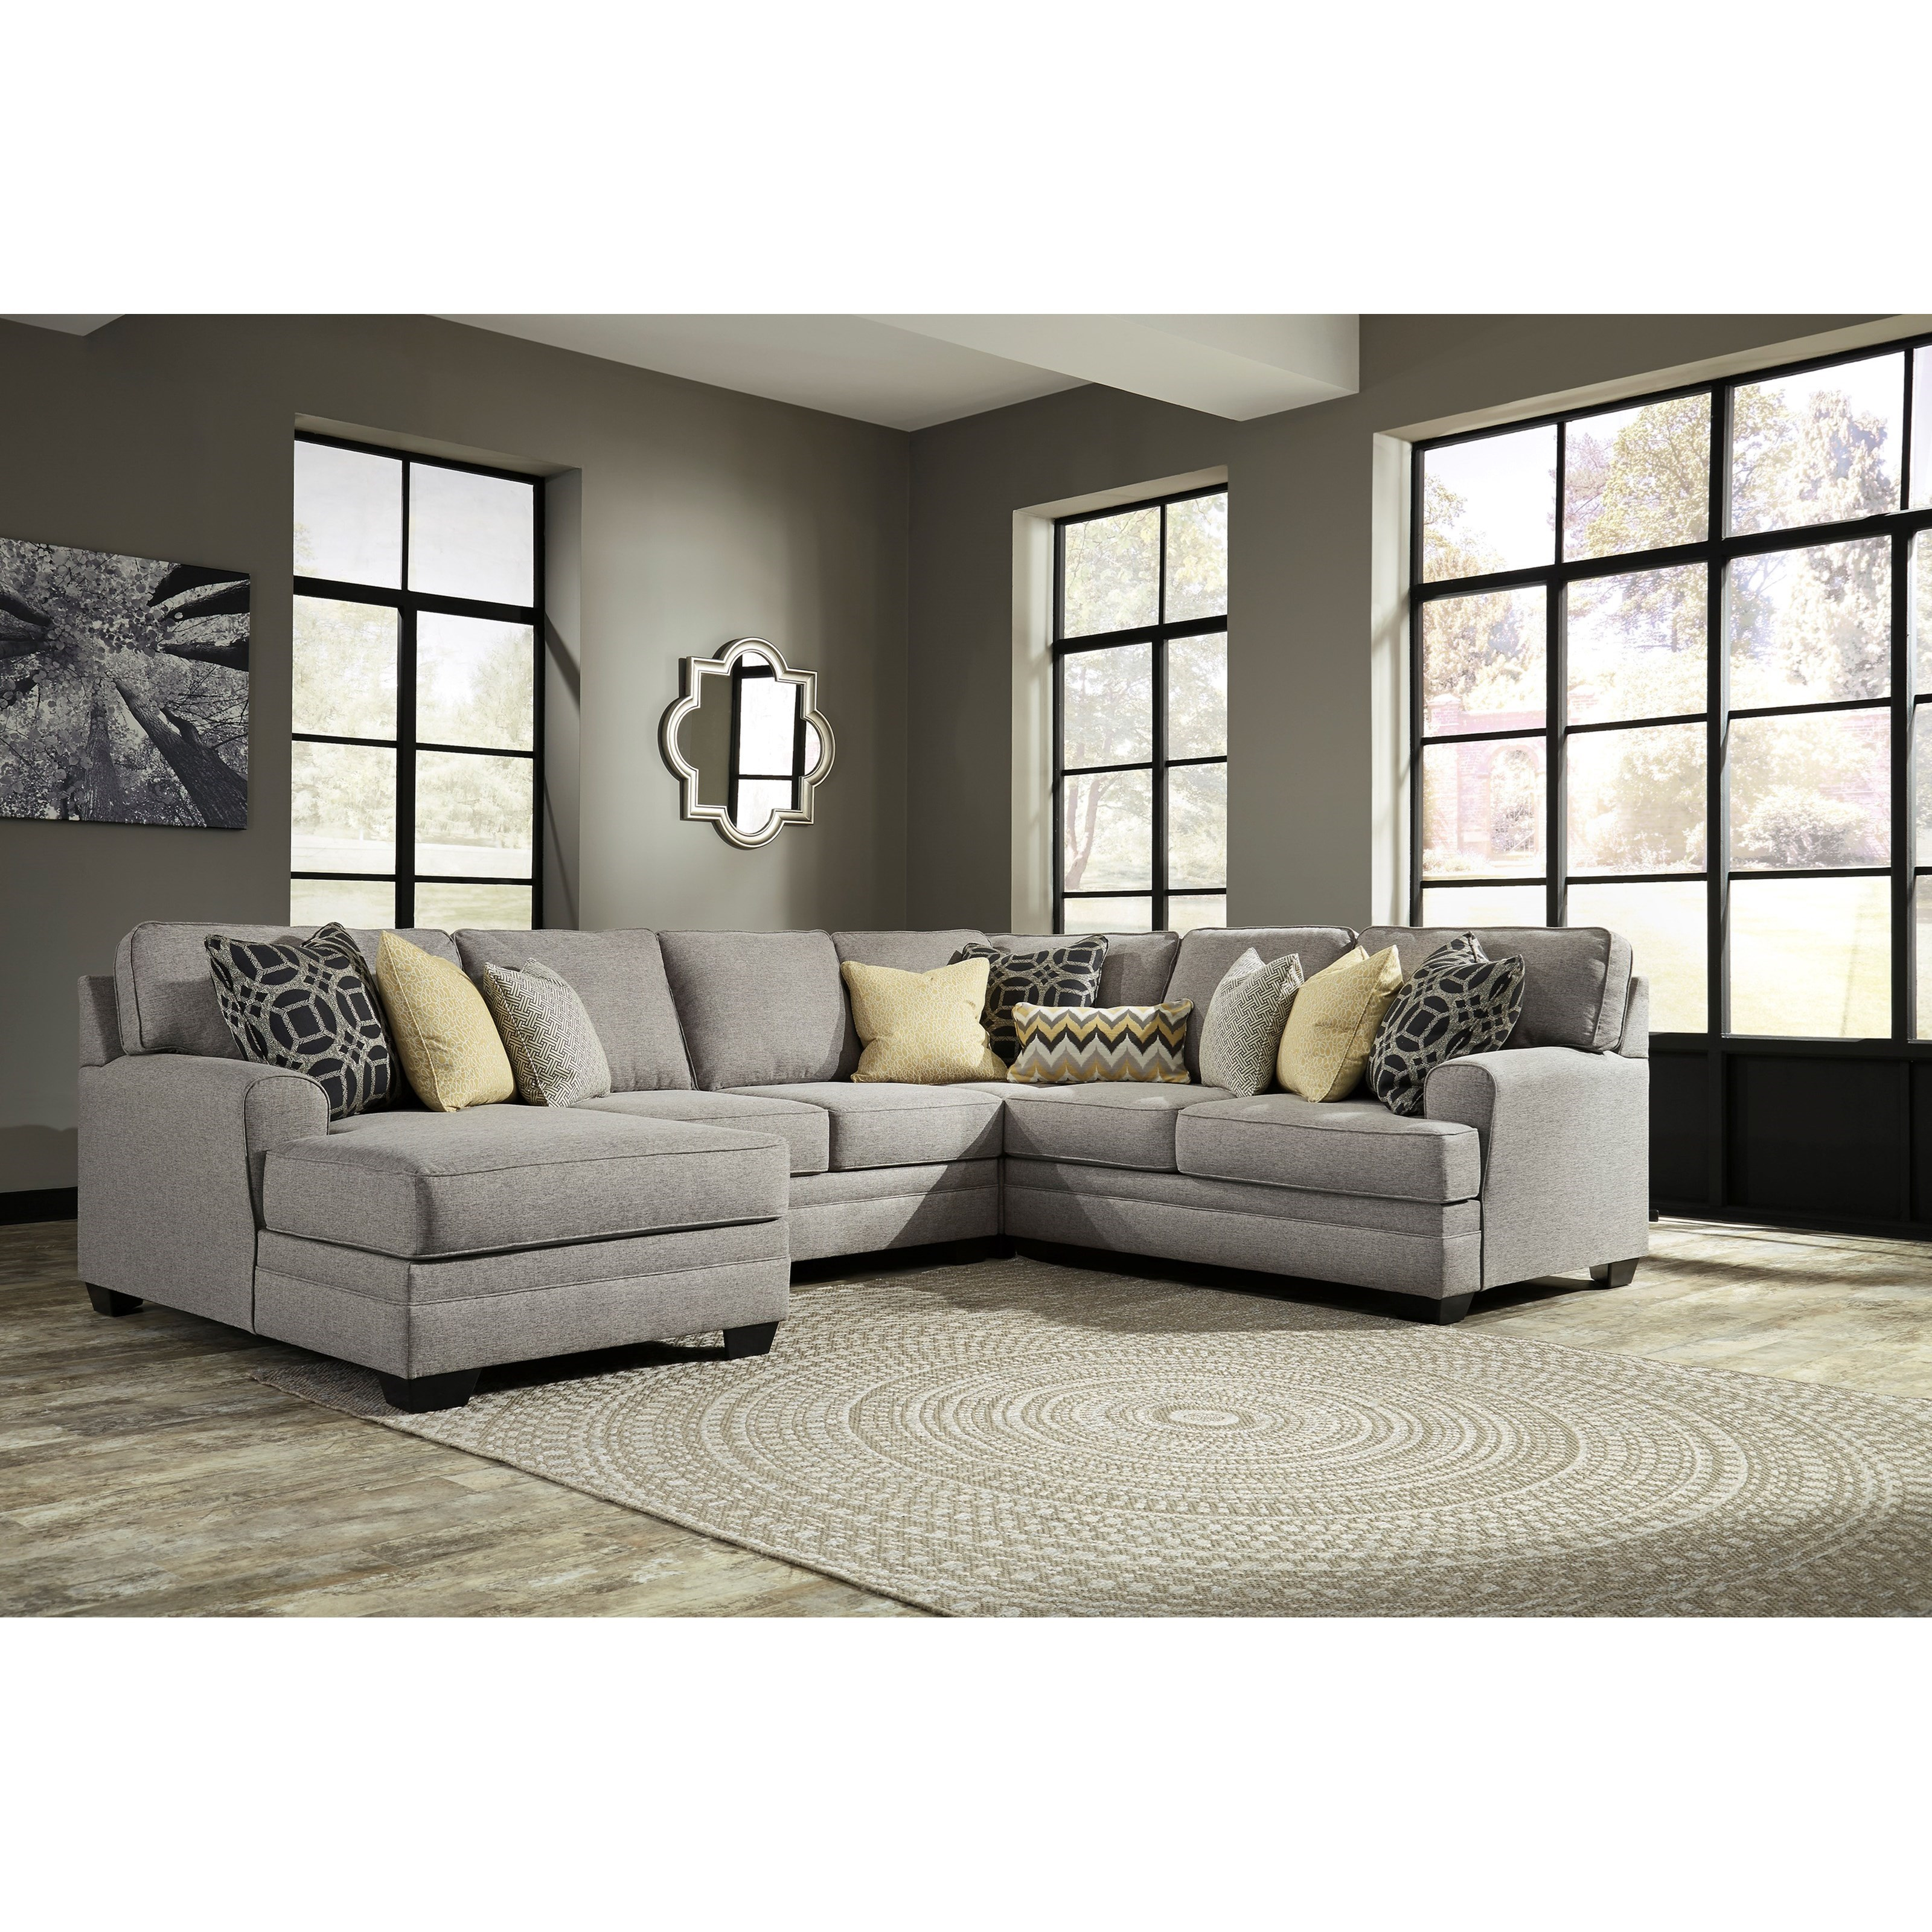 liberty 2 piece sofa and motion loveseat group in grey outdoor furniture wicker sectional benchcraft cresson contemporary 4 with